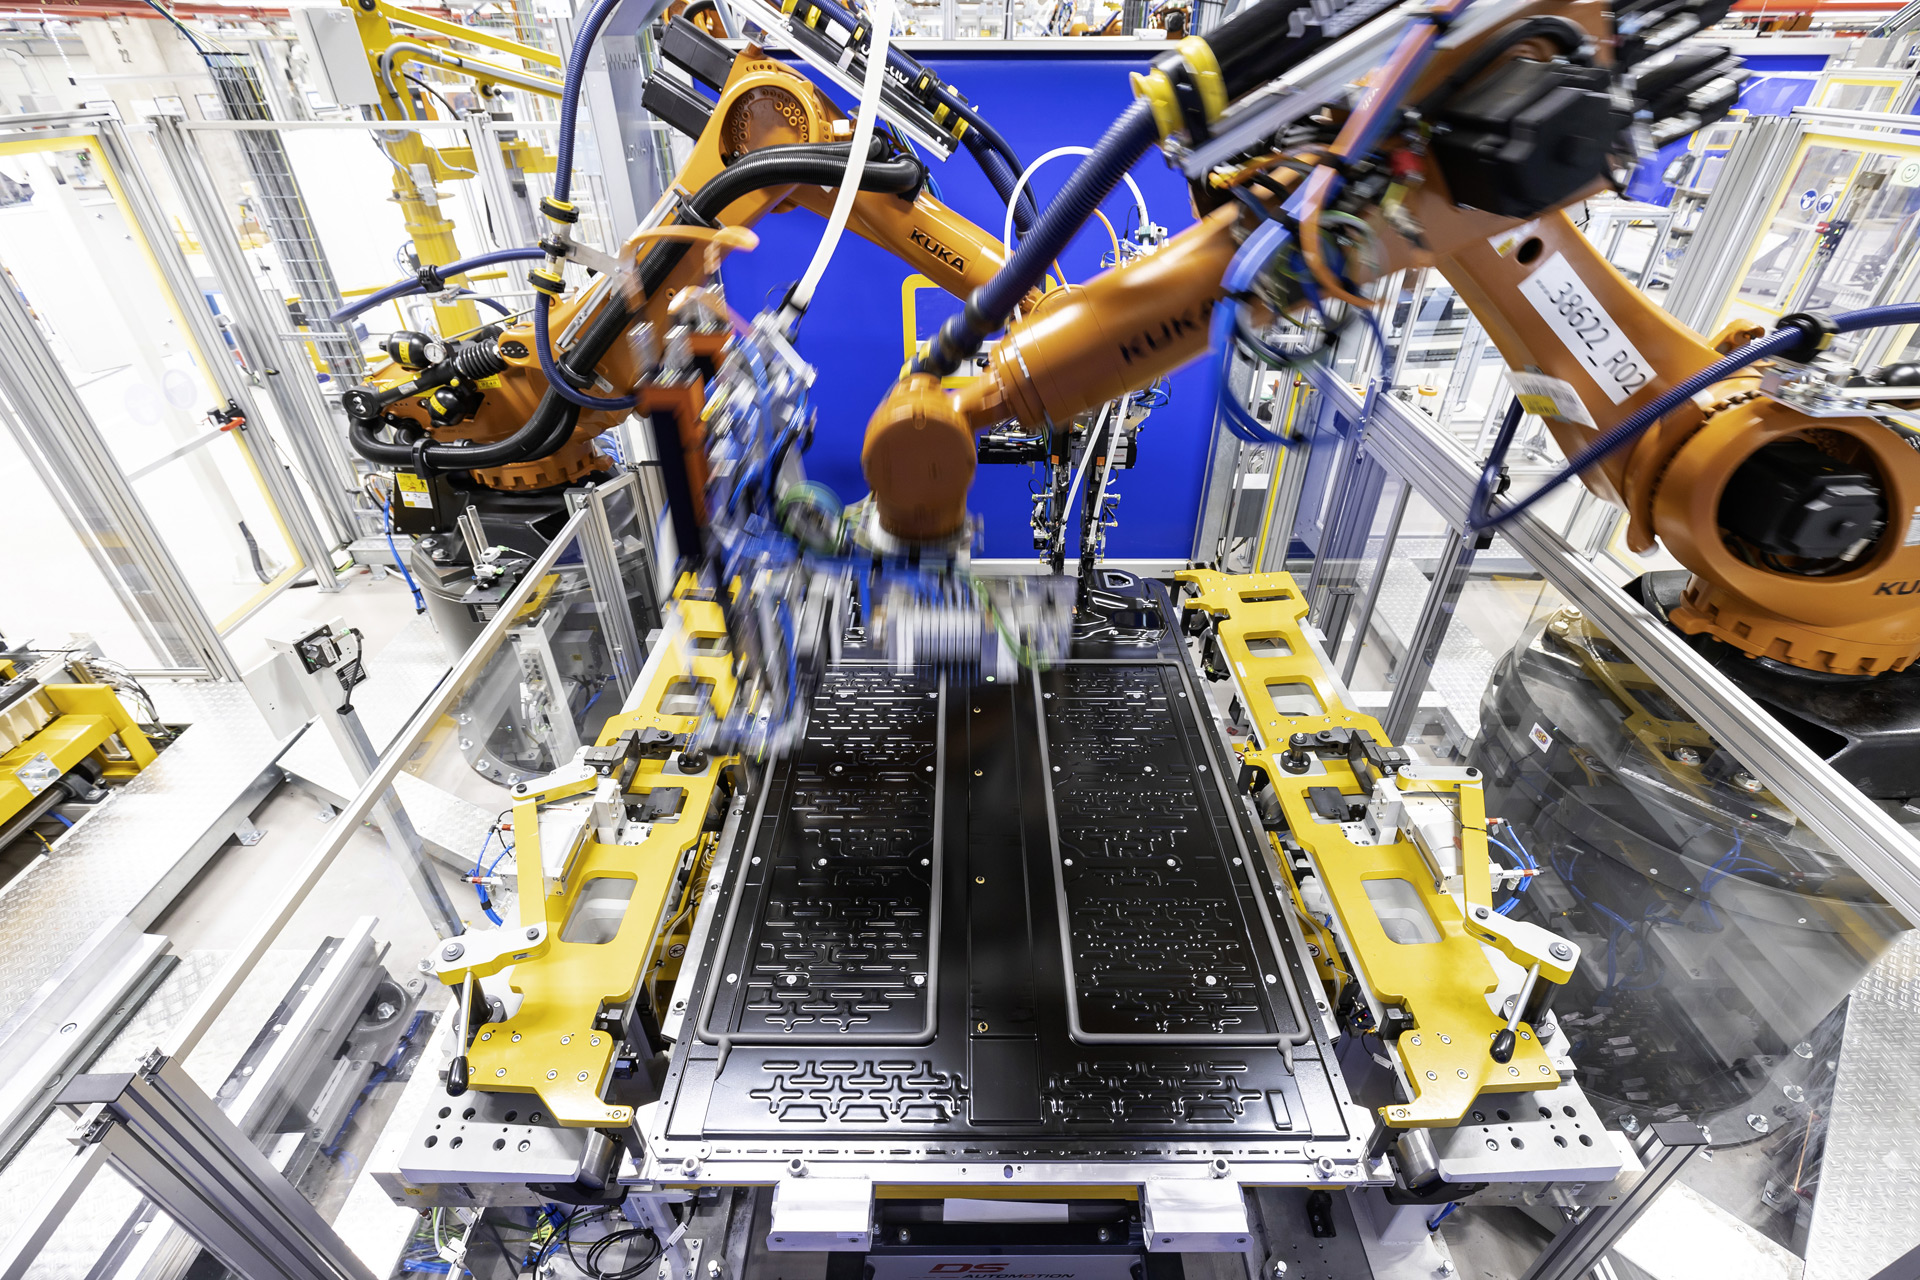 battery-production-at-mercedes-benzs-plant-in-hedelfingen-germany_100786147_h